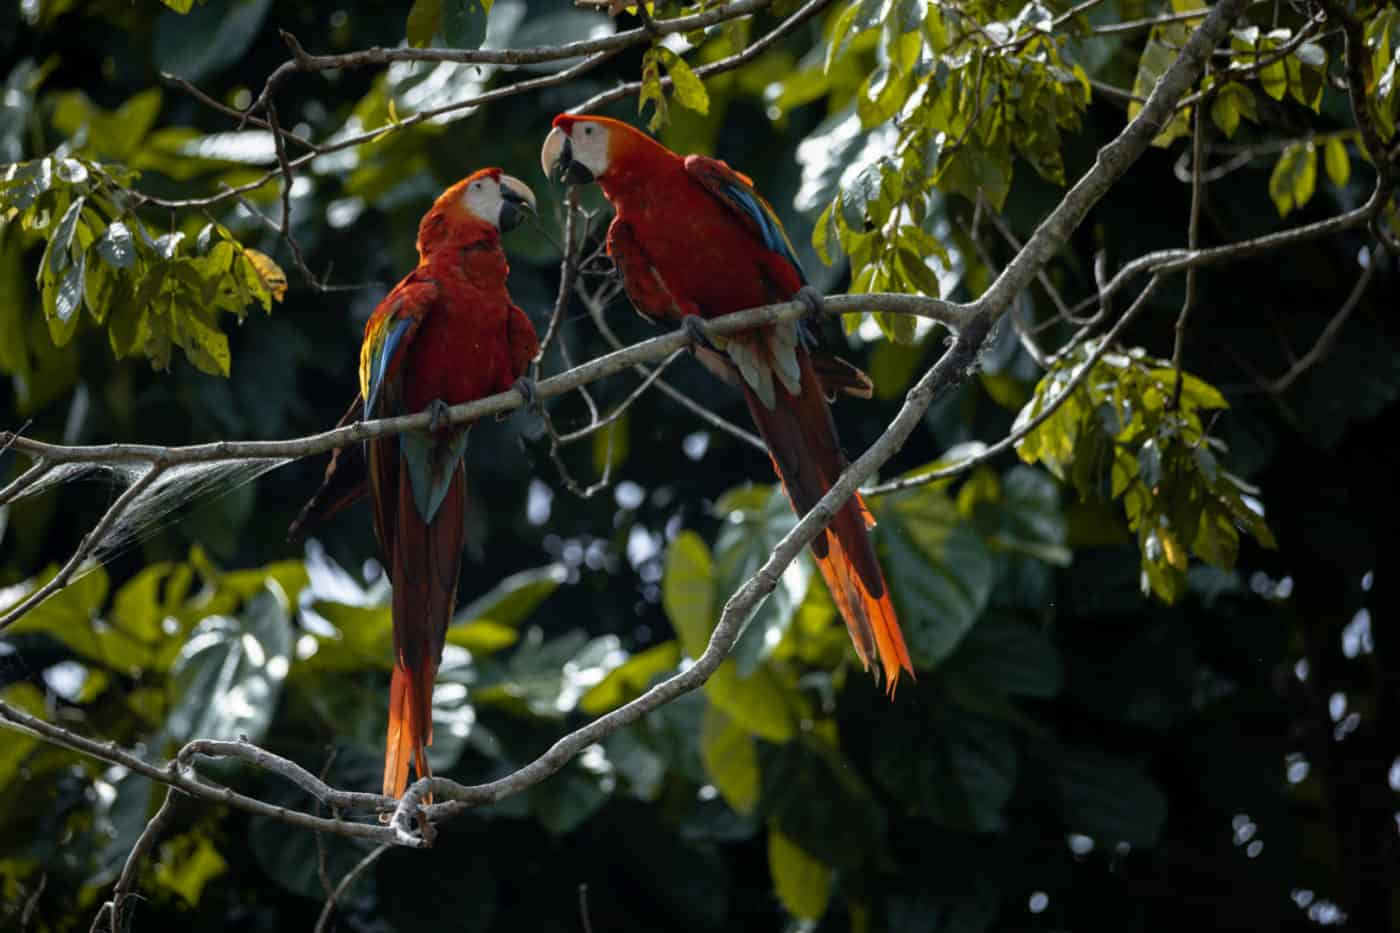 Scarlet macaws in the Amazon rainforest in Ecuador